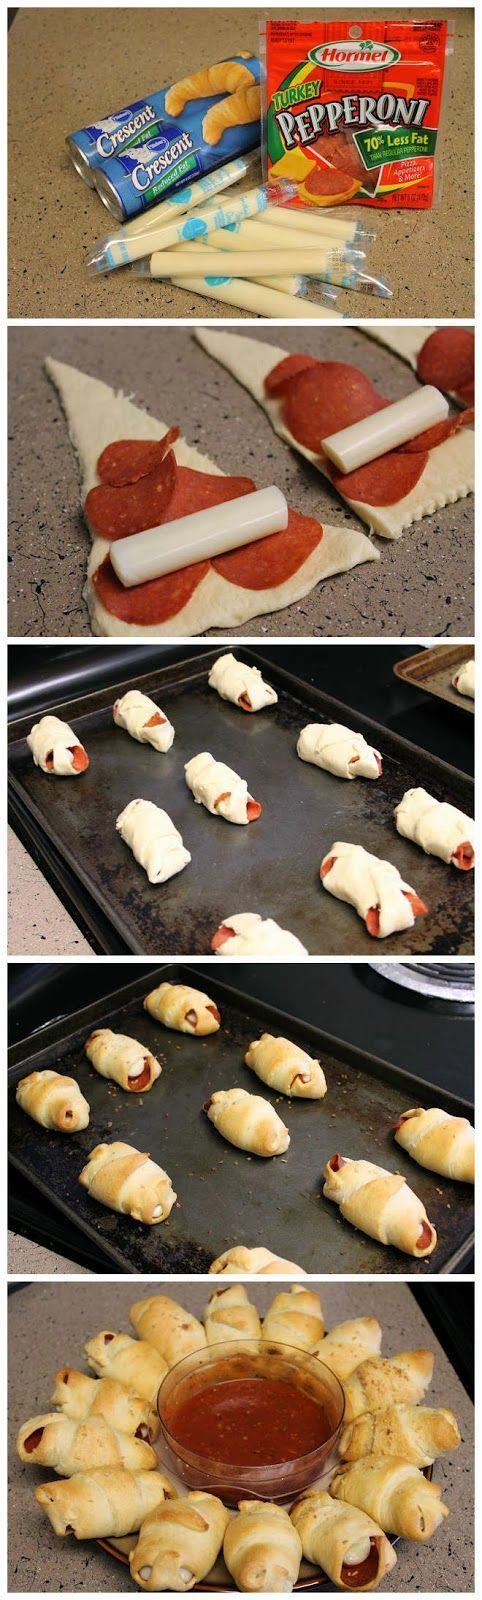 Crescent Pepperoni Roll-Ups. Appetizers for every occasion ever, starting now.